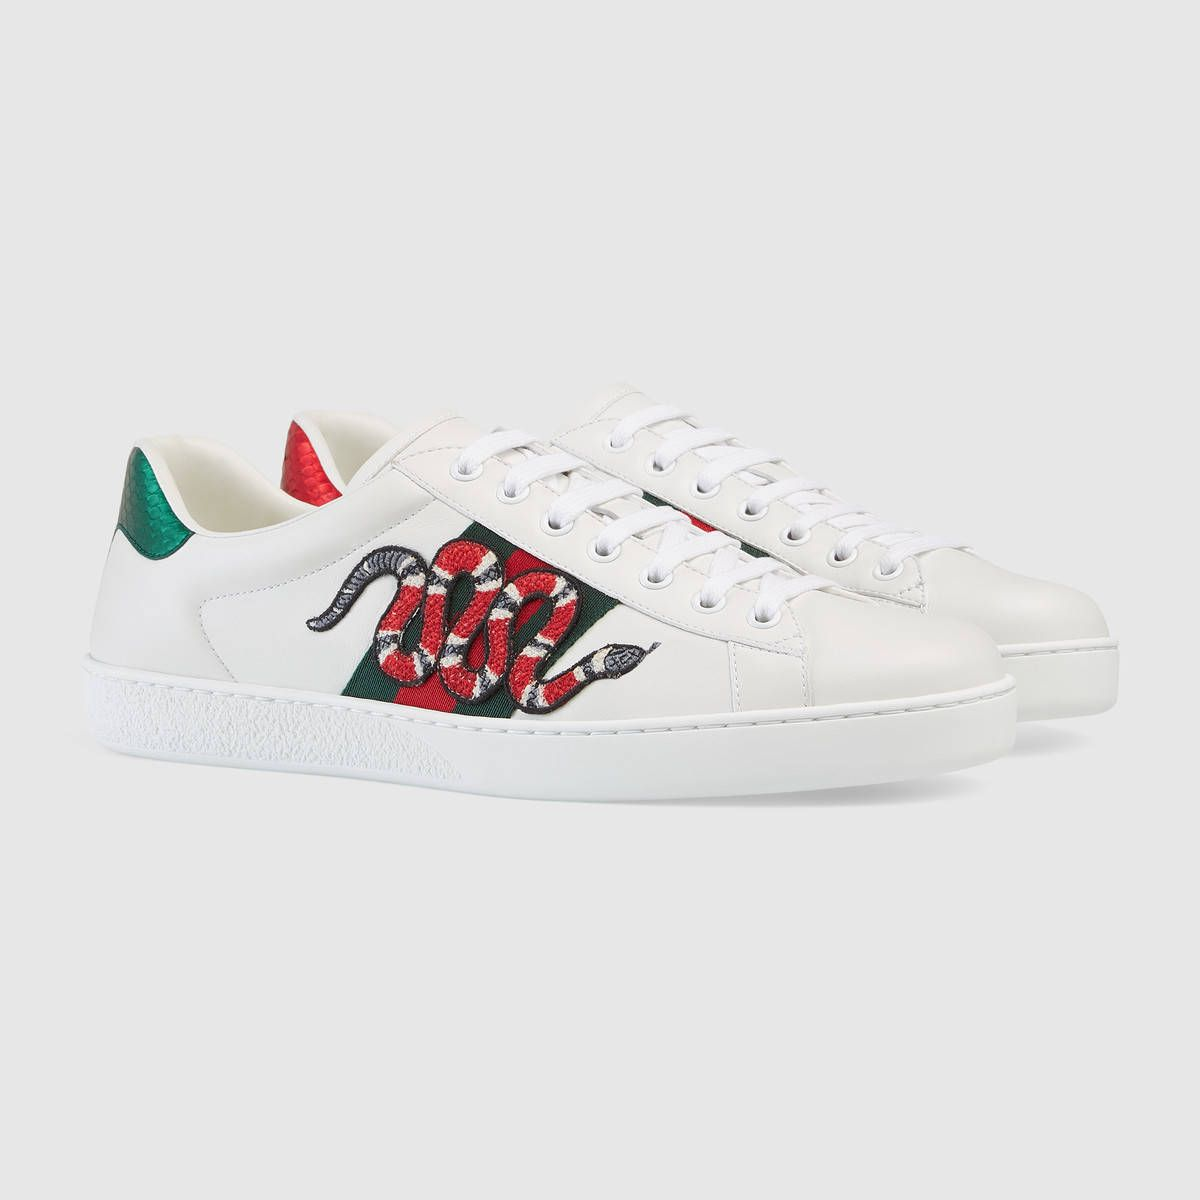 c6443f3f892 Gucci Ace embroidered sneaker in 2019